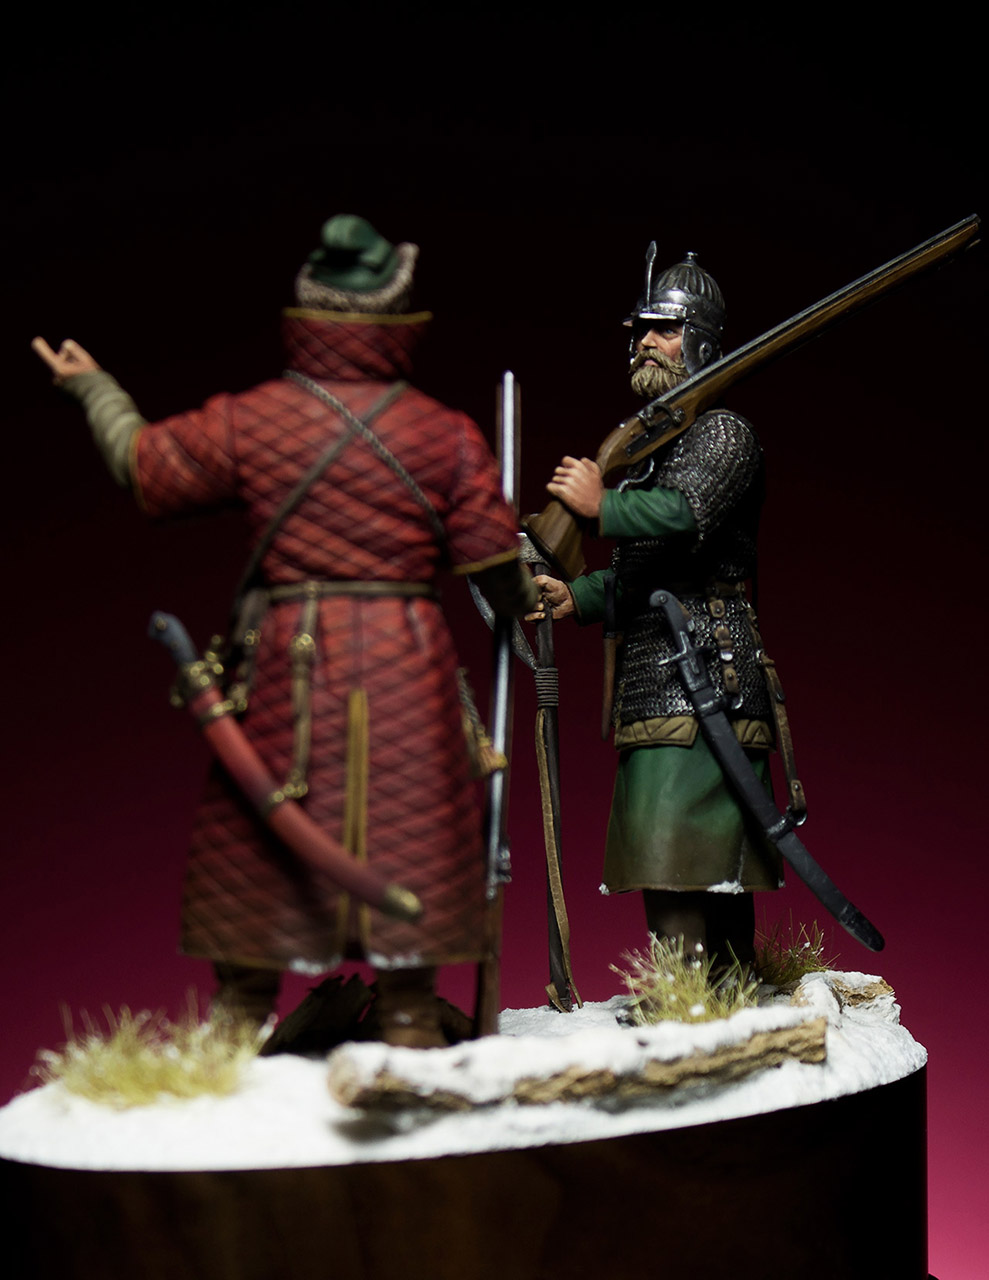 Figures: Russian musketeers, photo #3